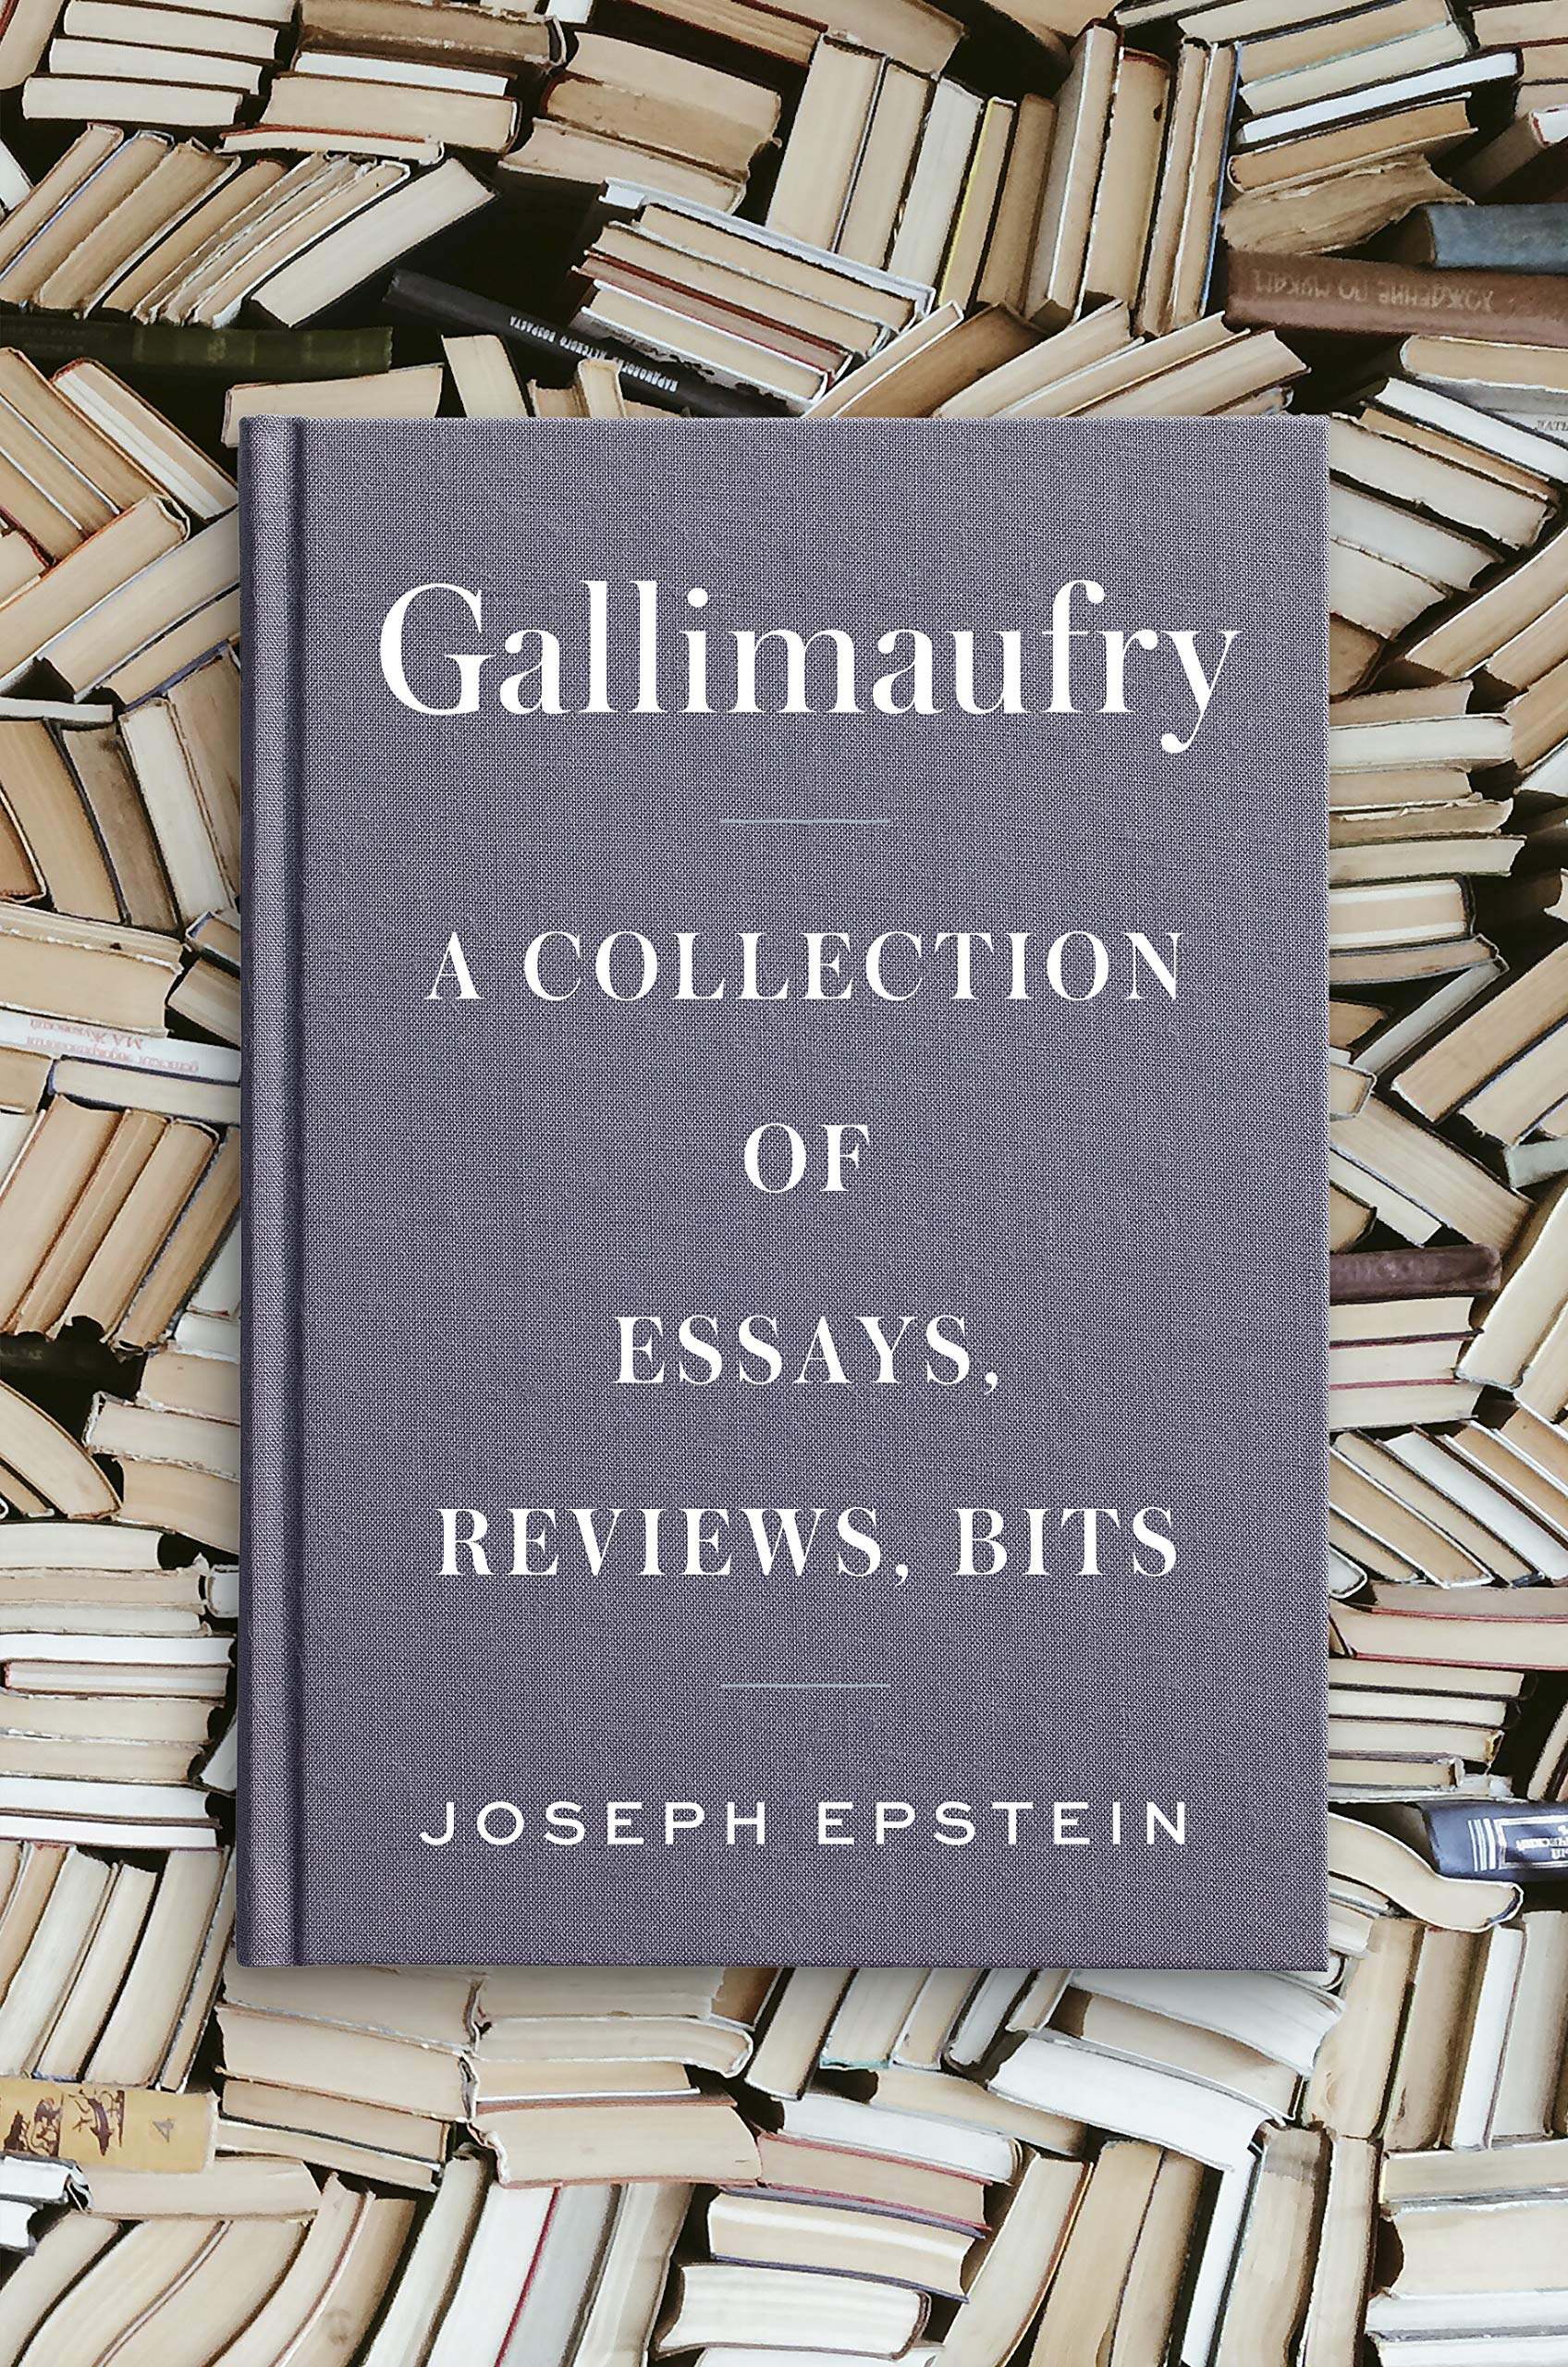 Gallimaufry: A Collection of Essays, Reviews, Bits